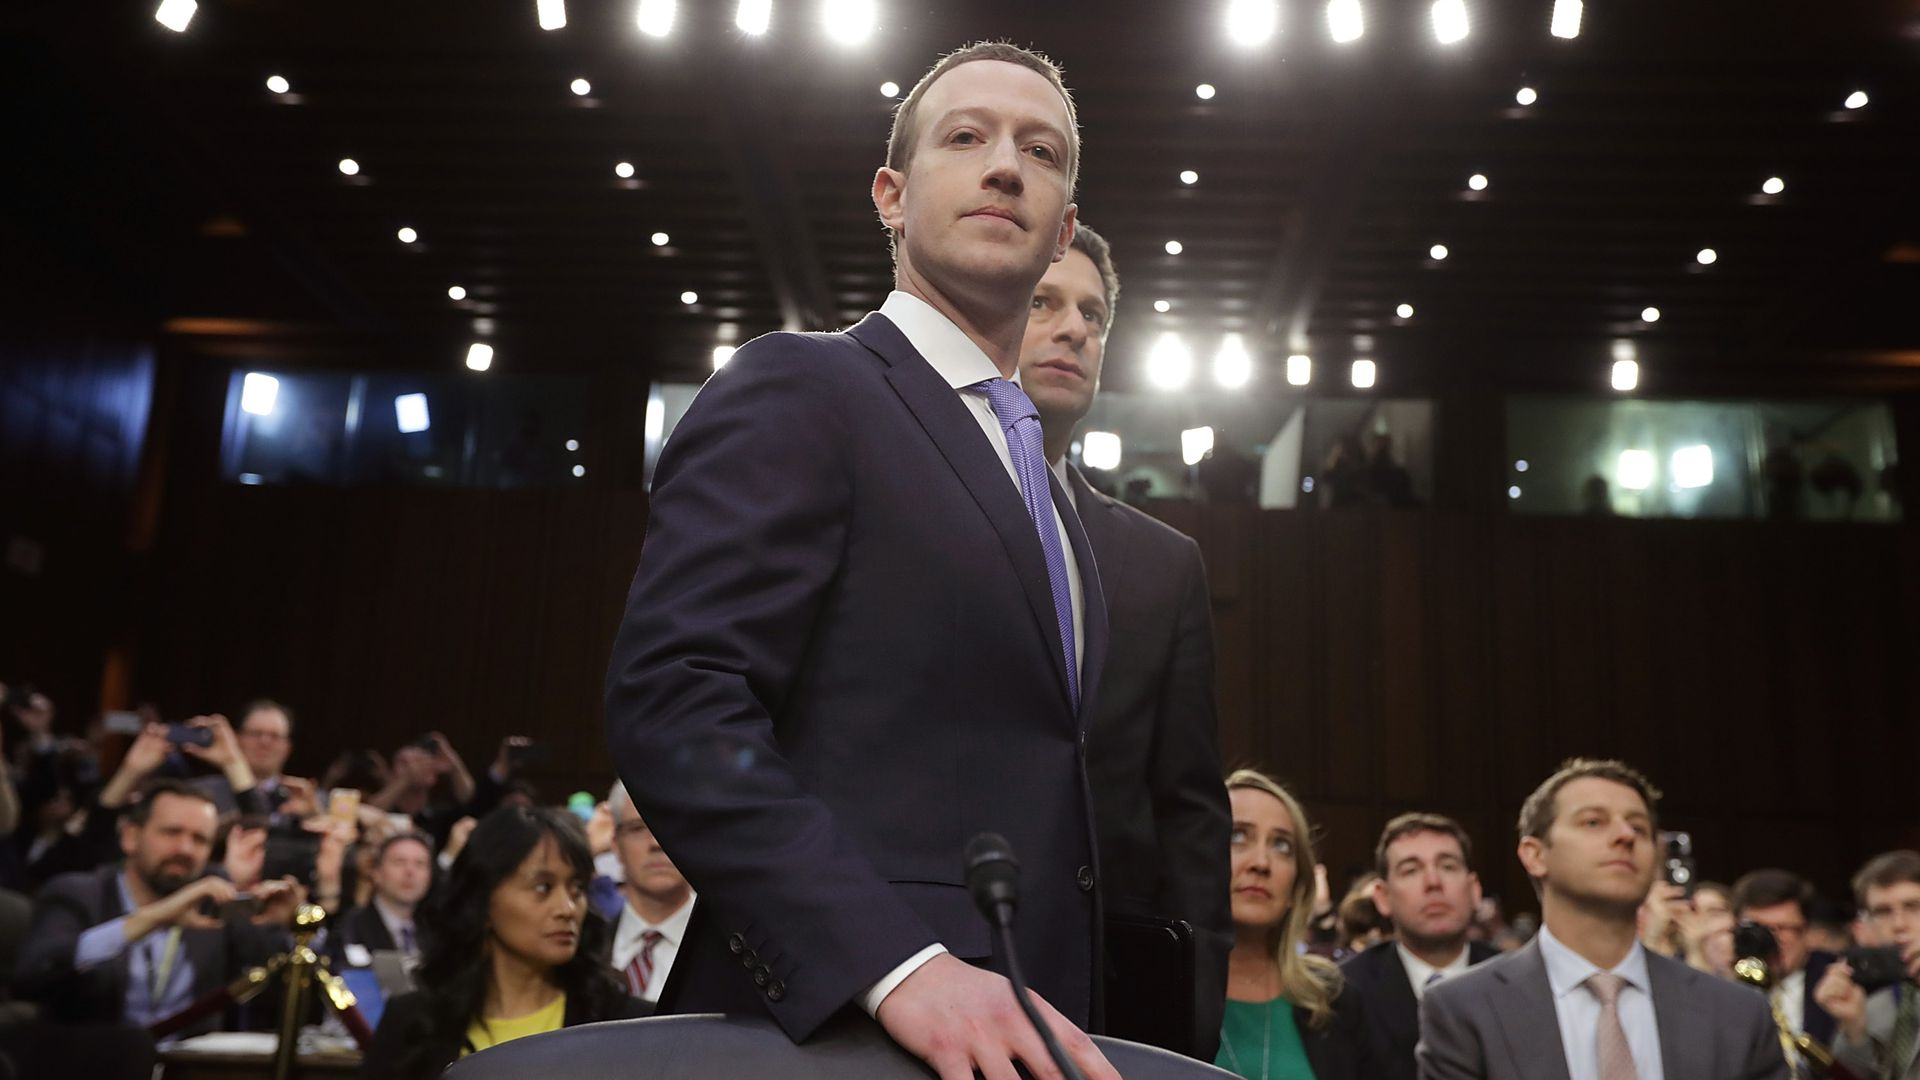 Mark Zuckerberg stands with his hand on a chair